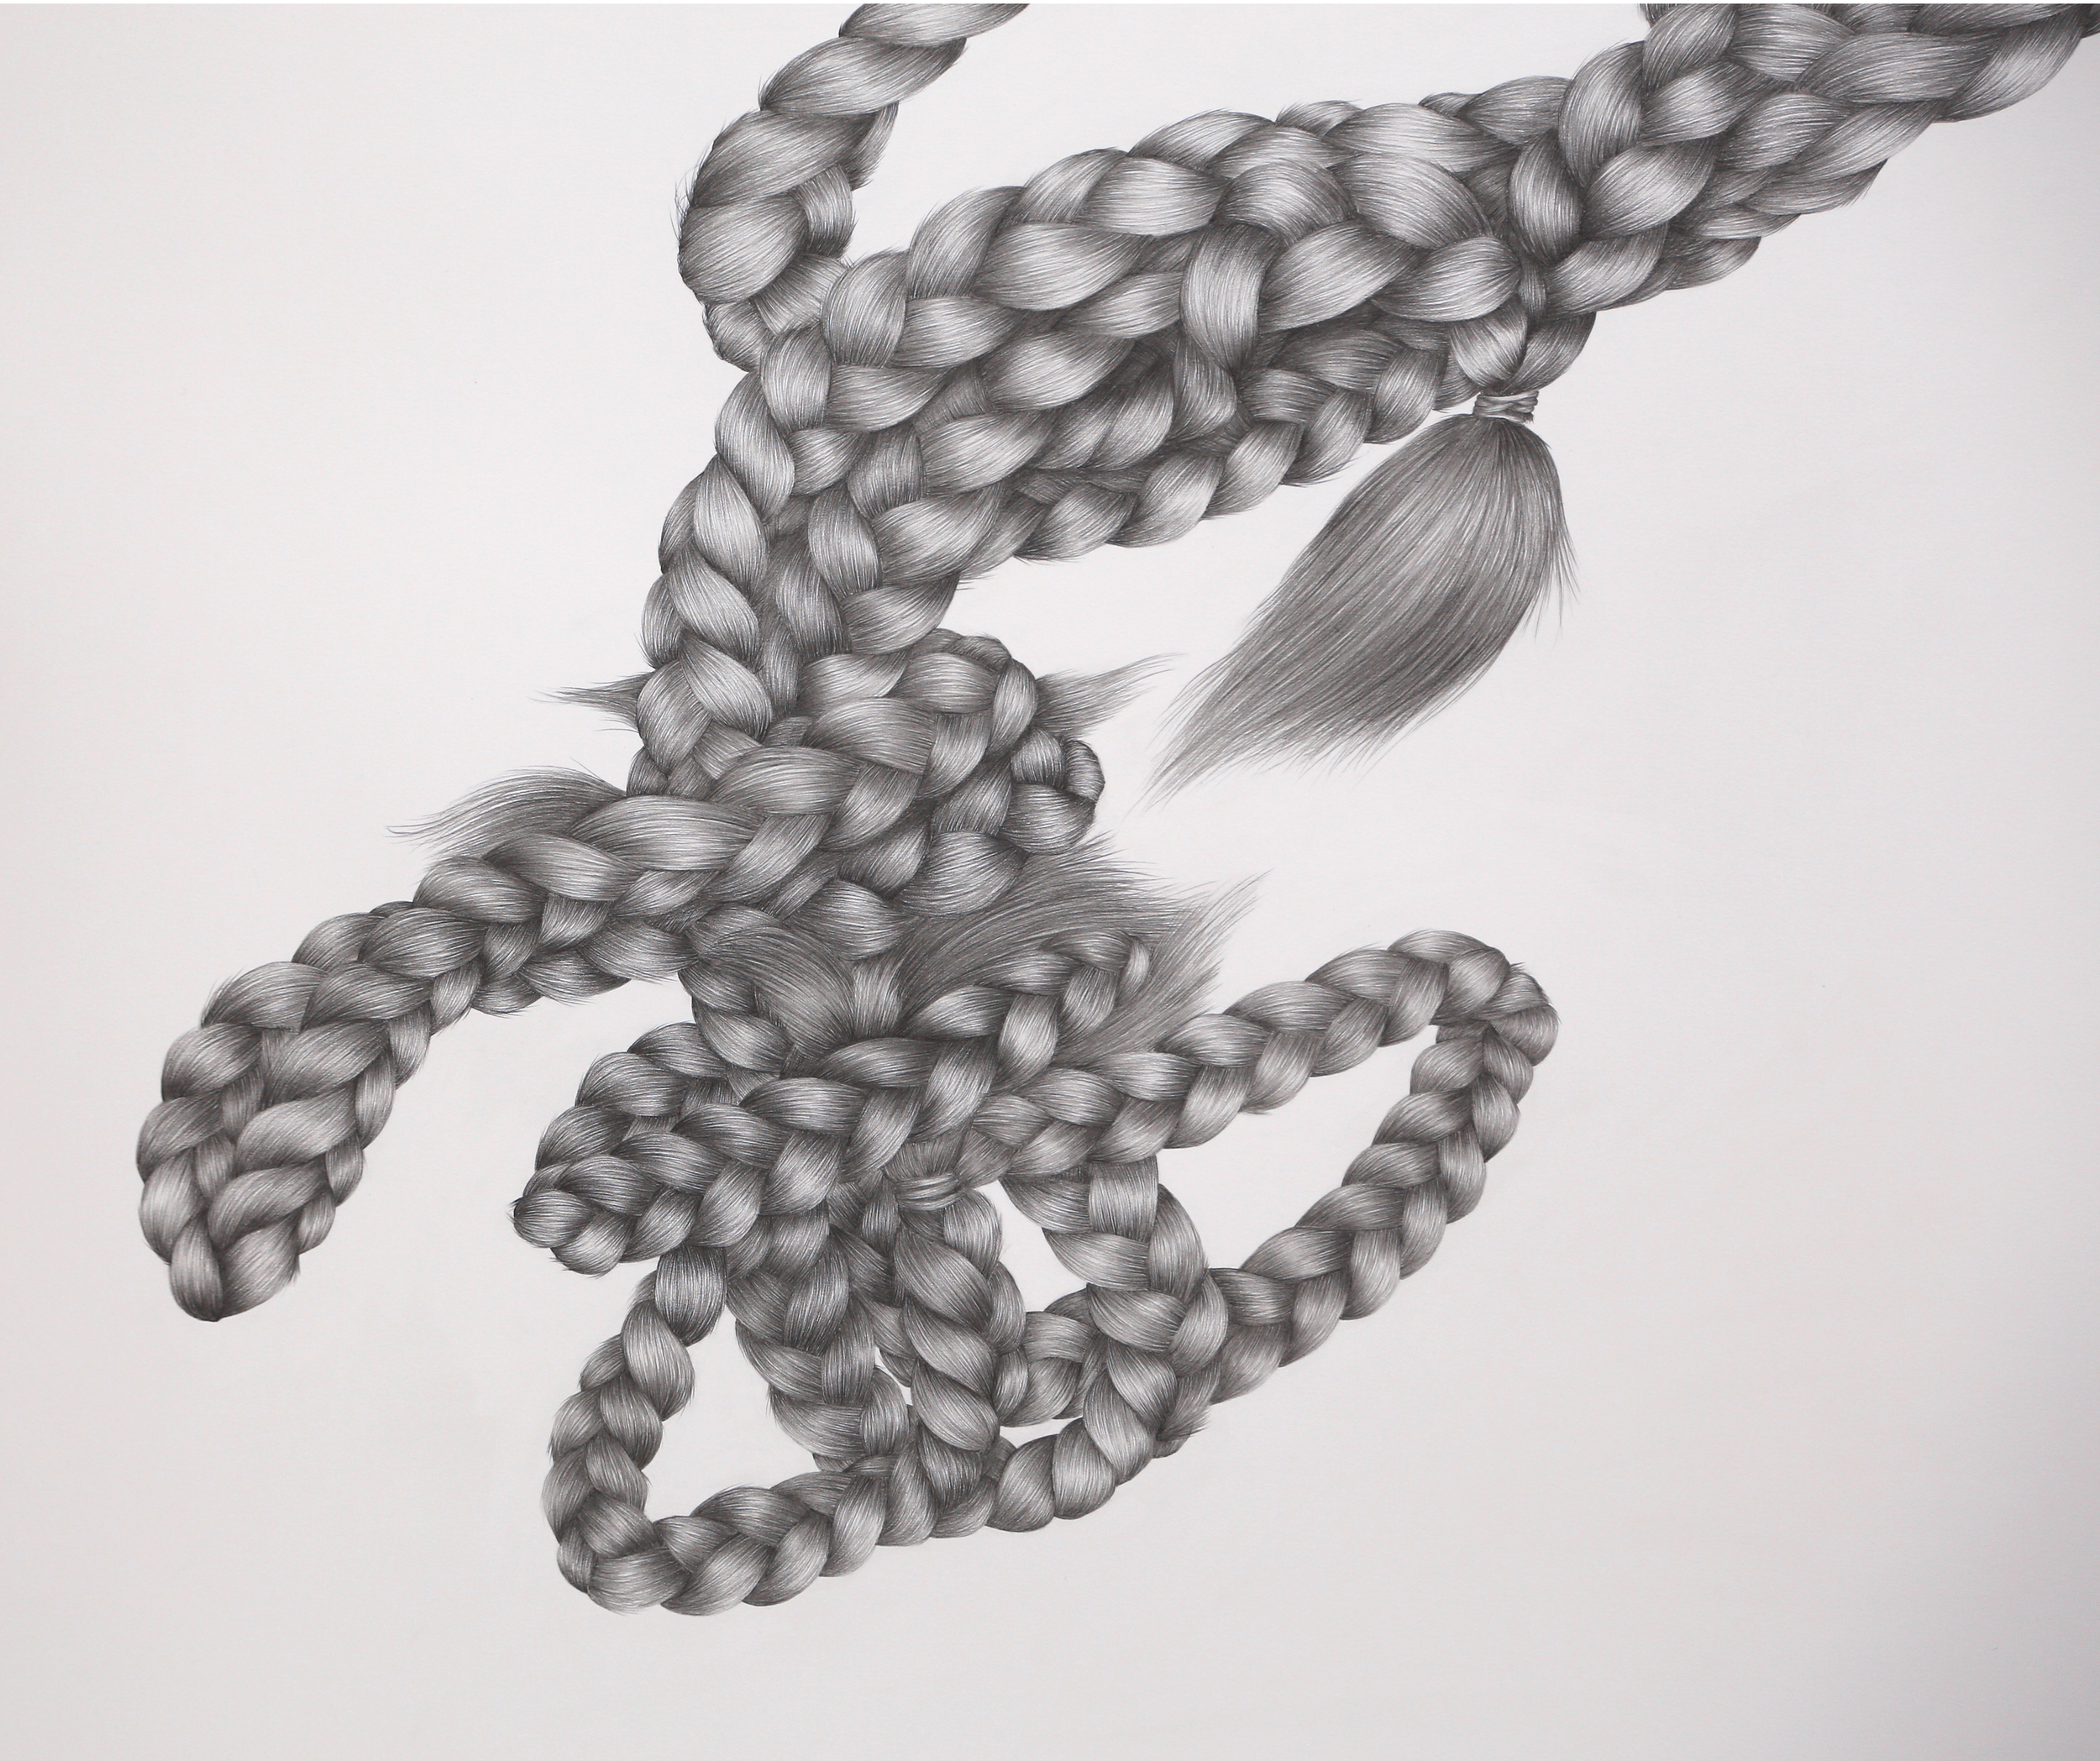 Tethers (detail) , 2013,Graphite on Paper, 1500mm x 1800mm